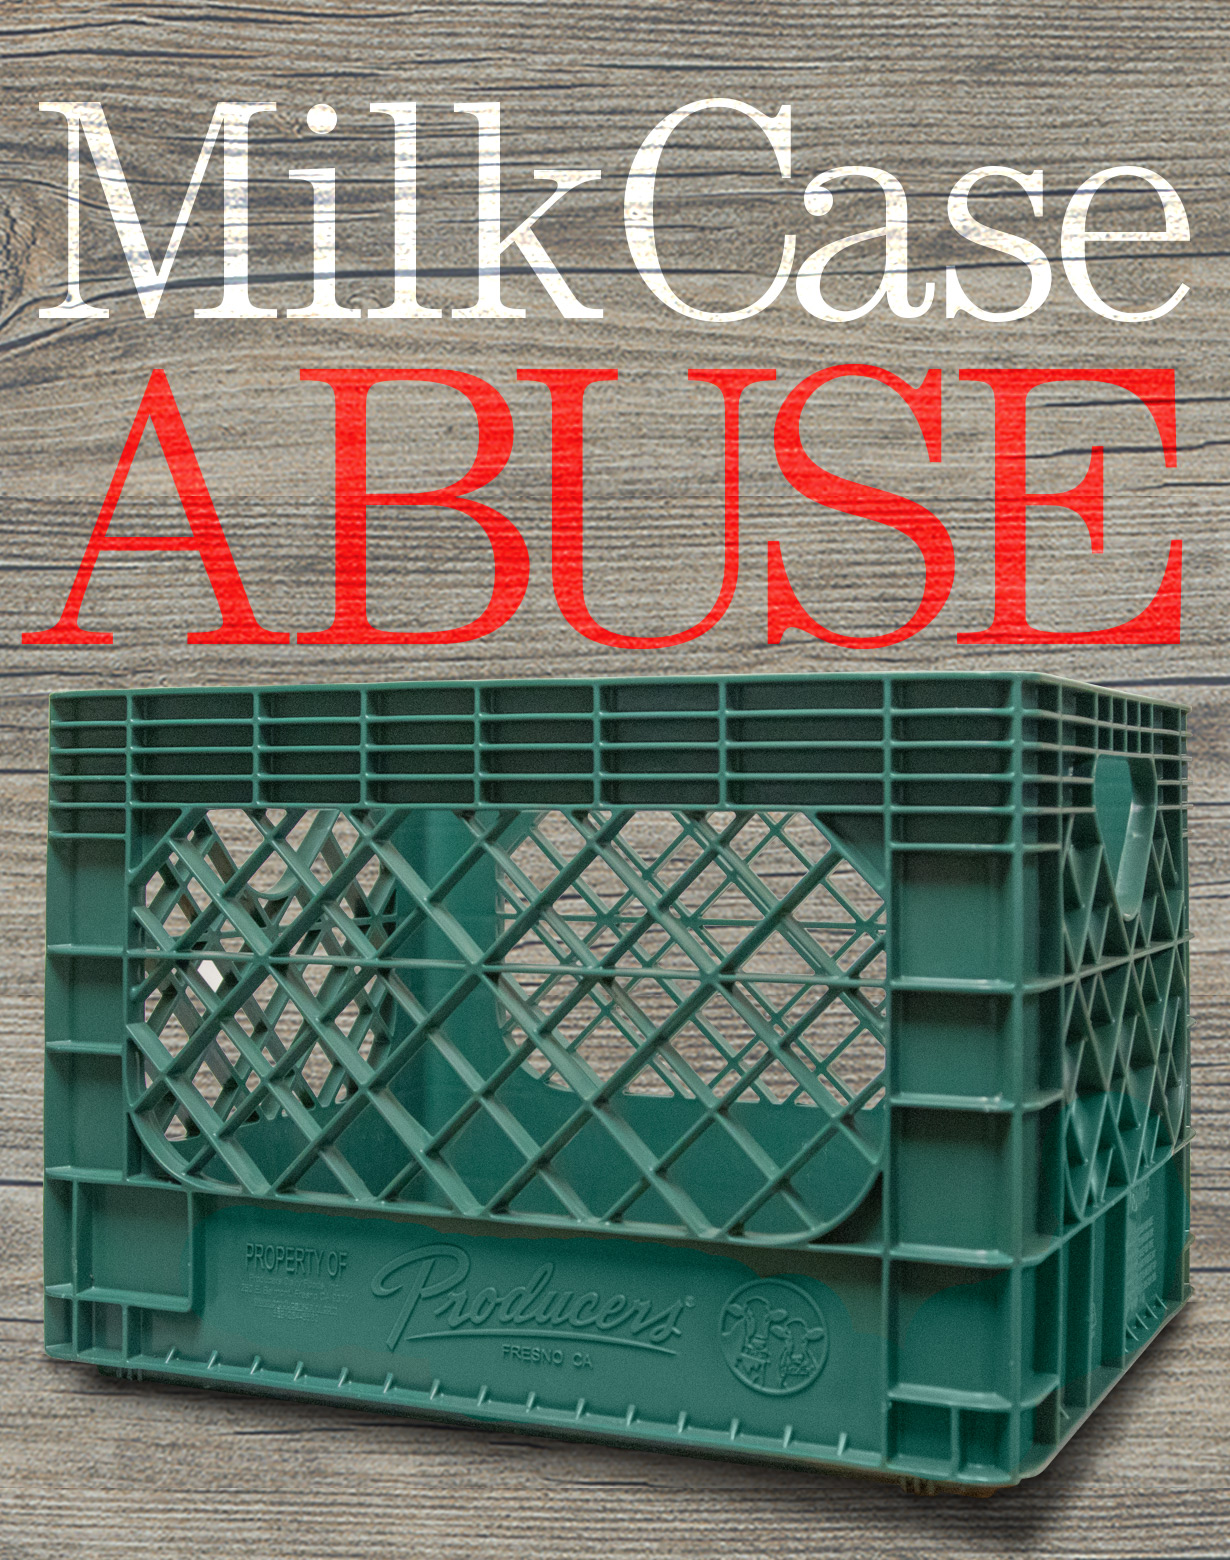 Click here to learn more about milk crate abuse.